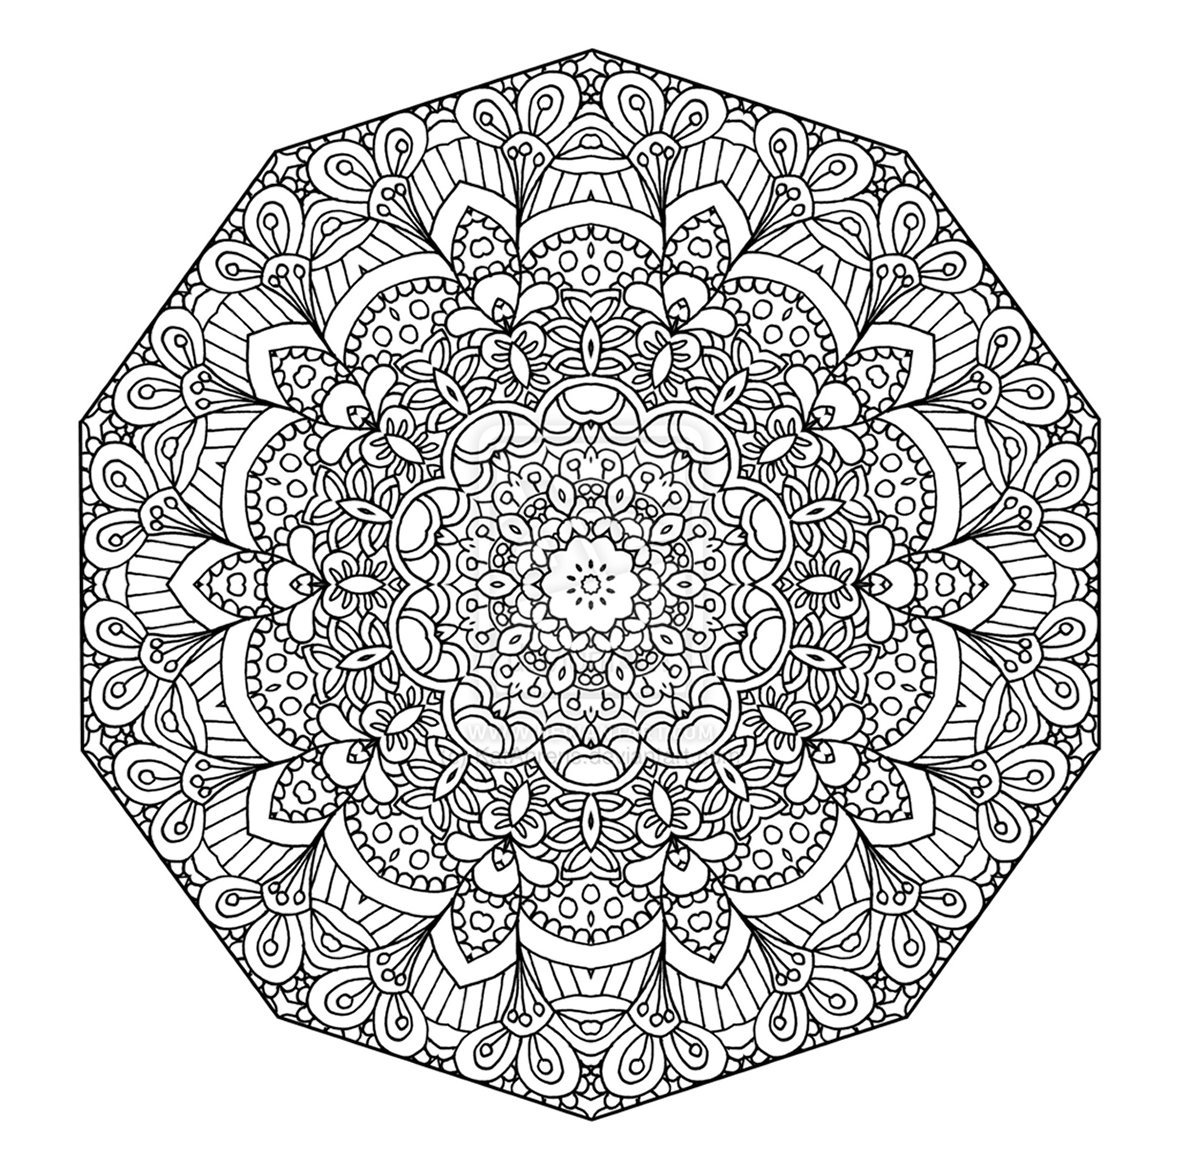 Downloads Advanced Mandala Coloring Pages 58 For Line Drawings